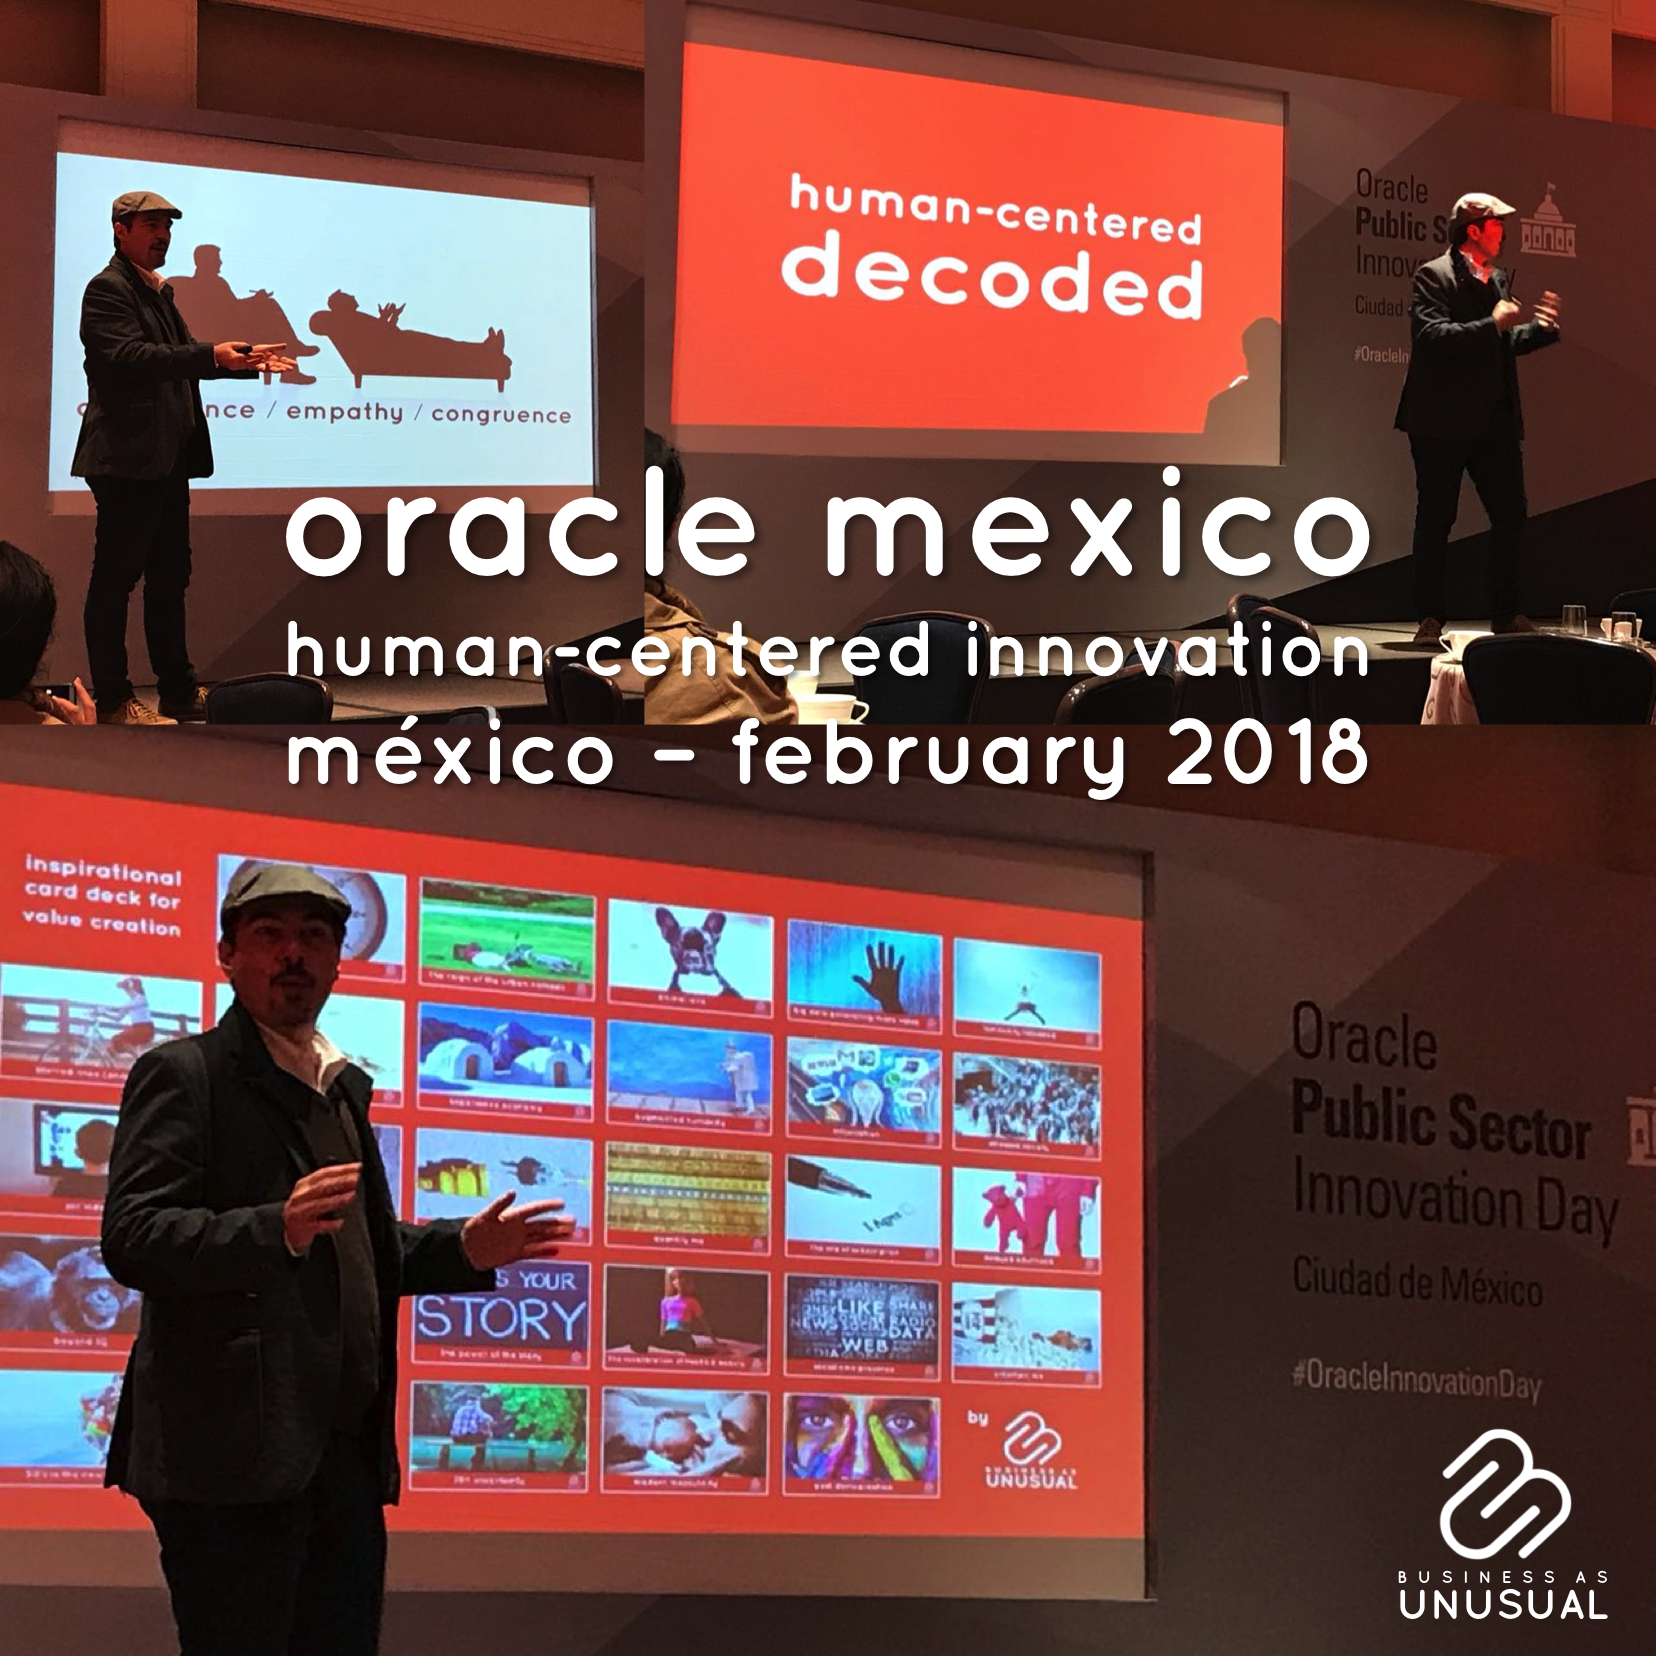 ORACLE MEXICO - Human-Centered Innovation